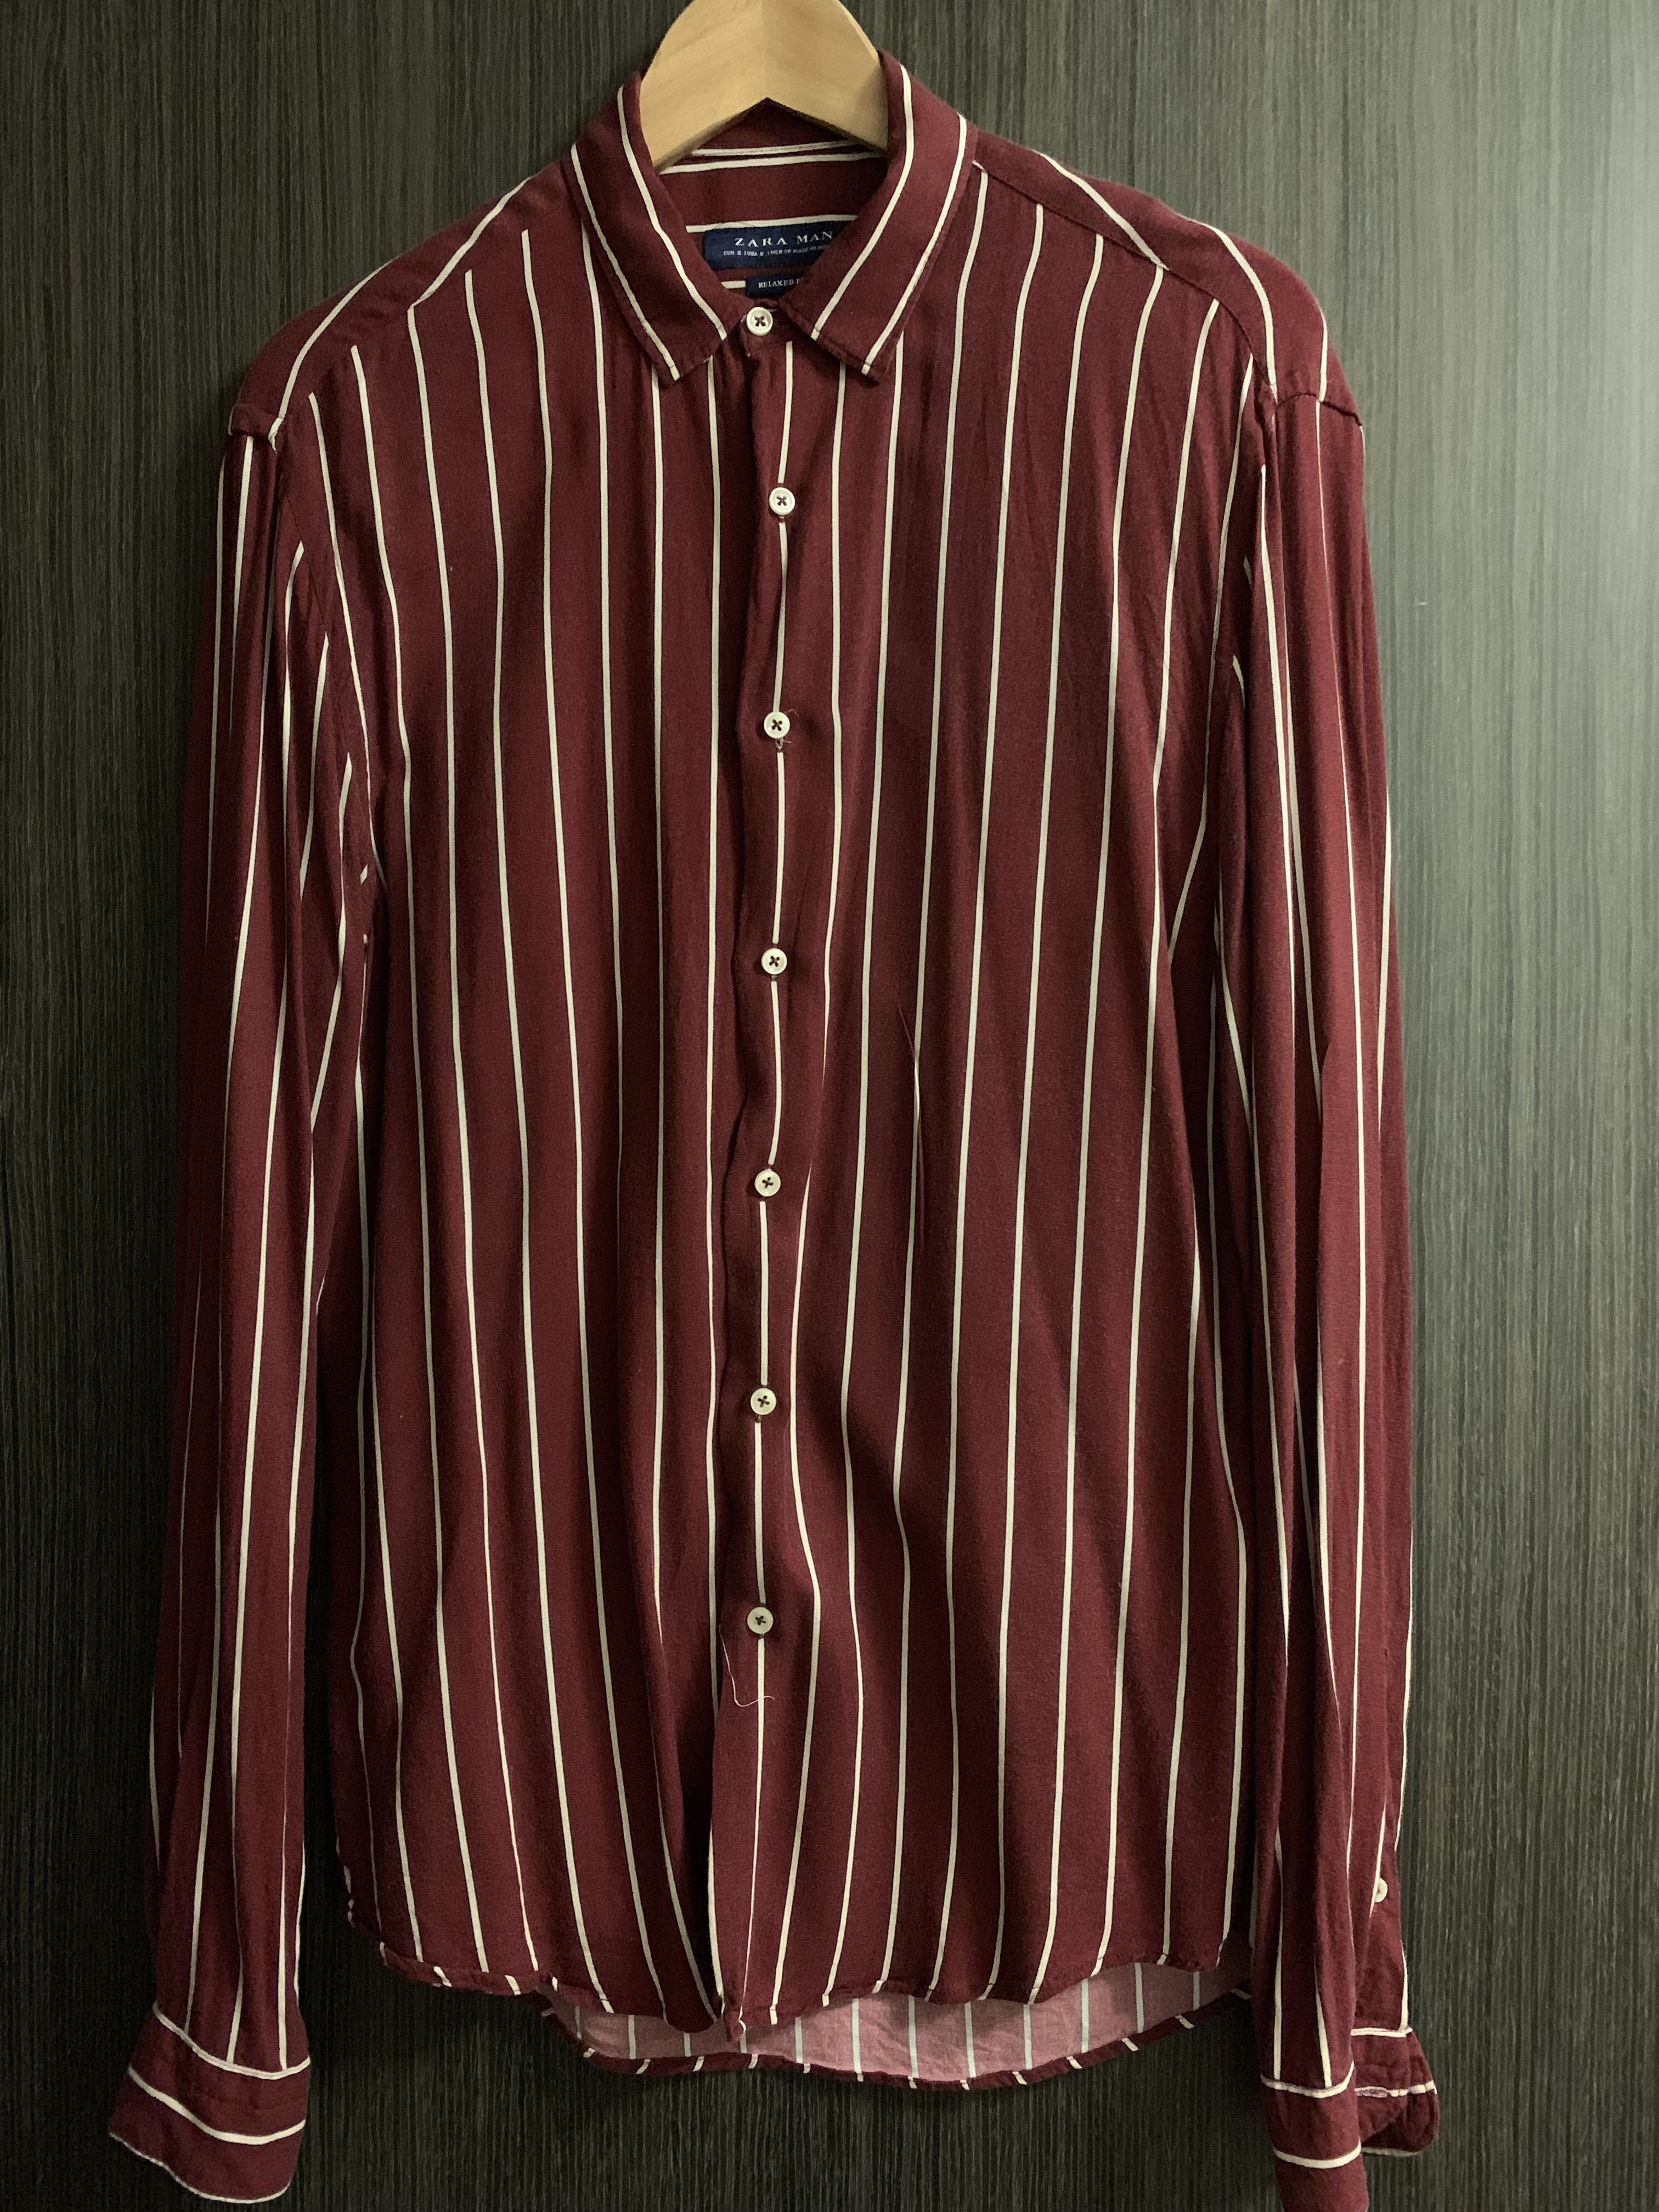 a890a971 (PRELOVED) ZARA STRIPED FLOWING SHIRT #ENDGAMEyourEXCESS, Men's Fashion,  Clothes, Tops on Carousell